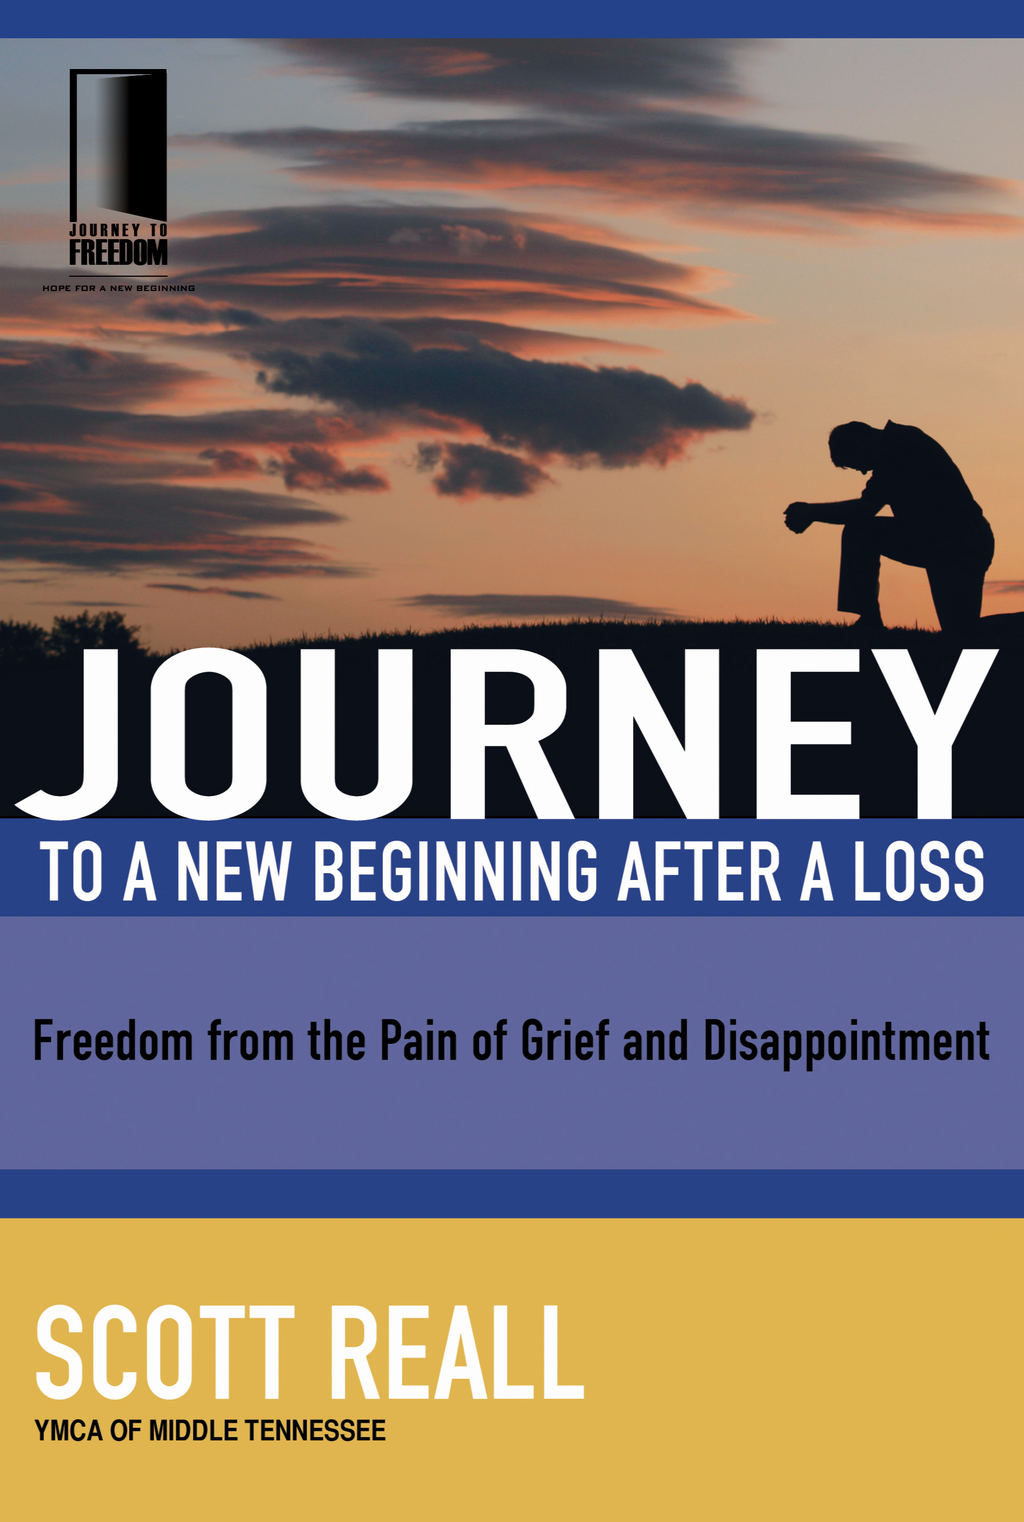 Journey to a New Beginning after Loss